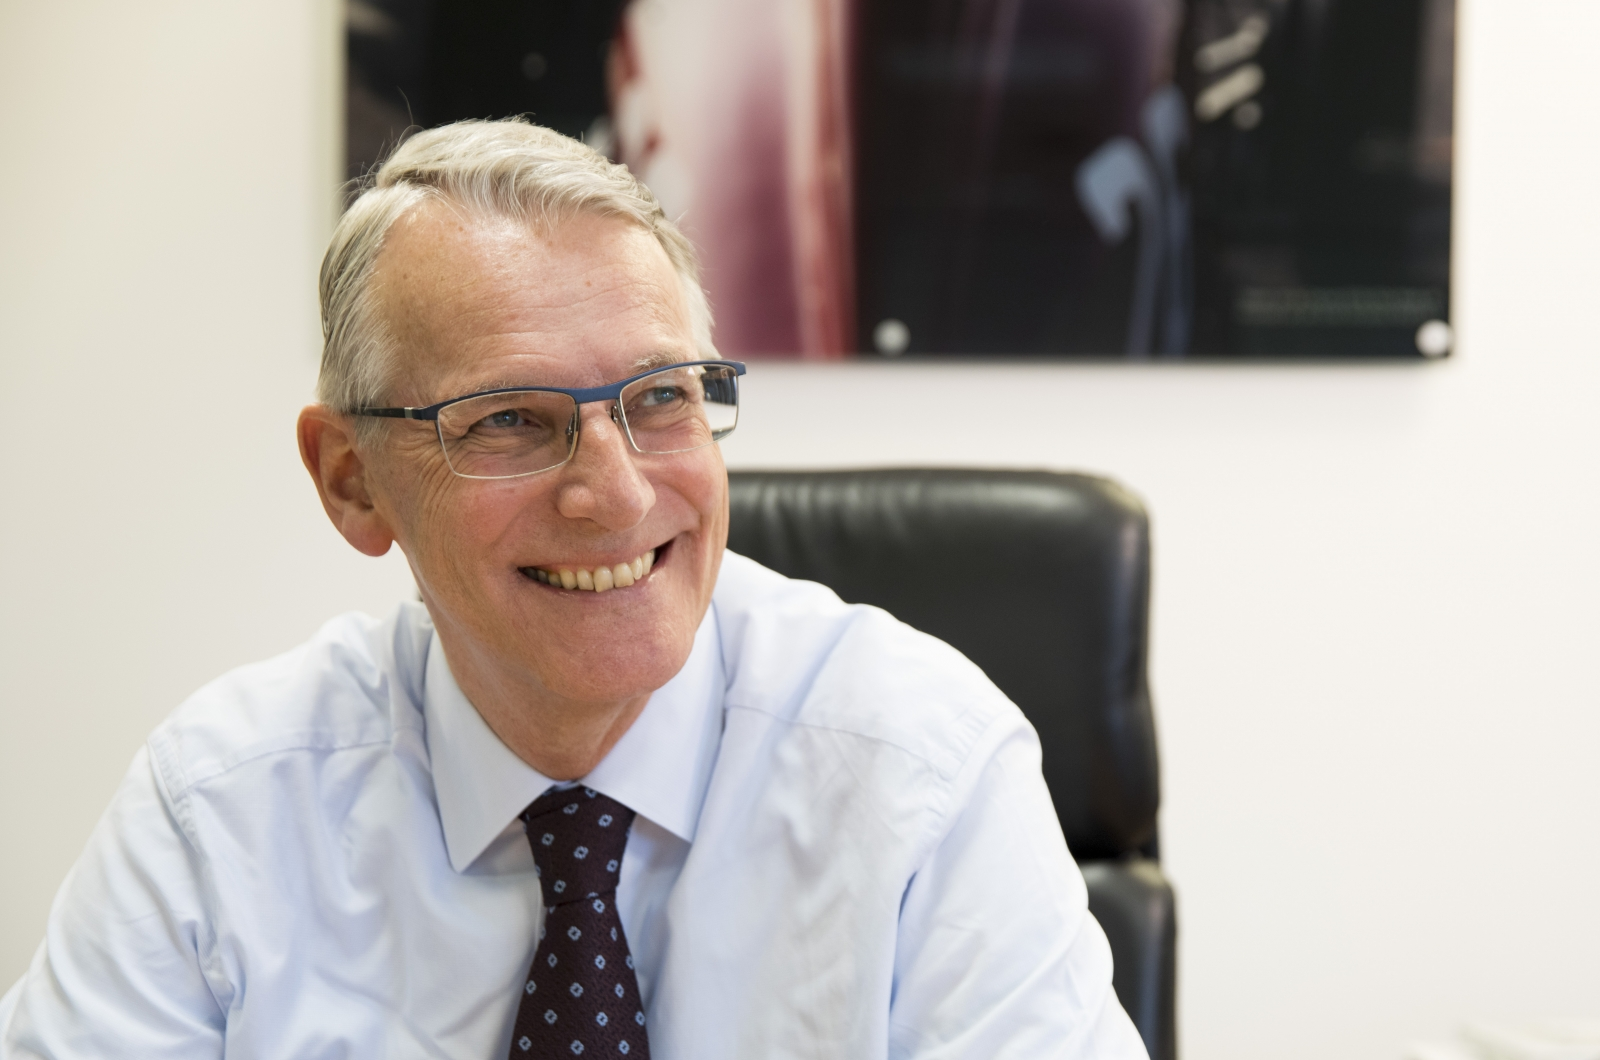 Canon European chief executive Rokus van Iperen